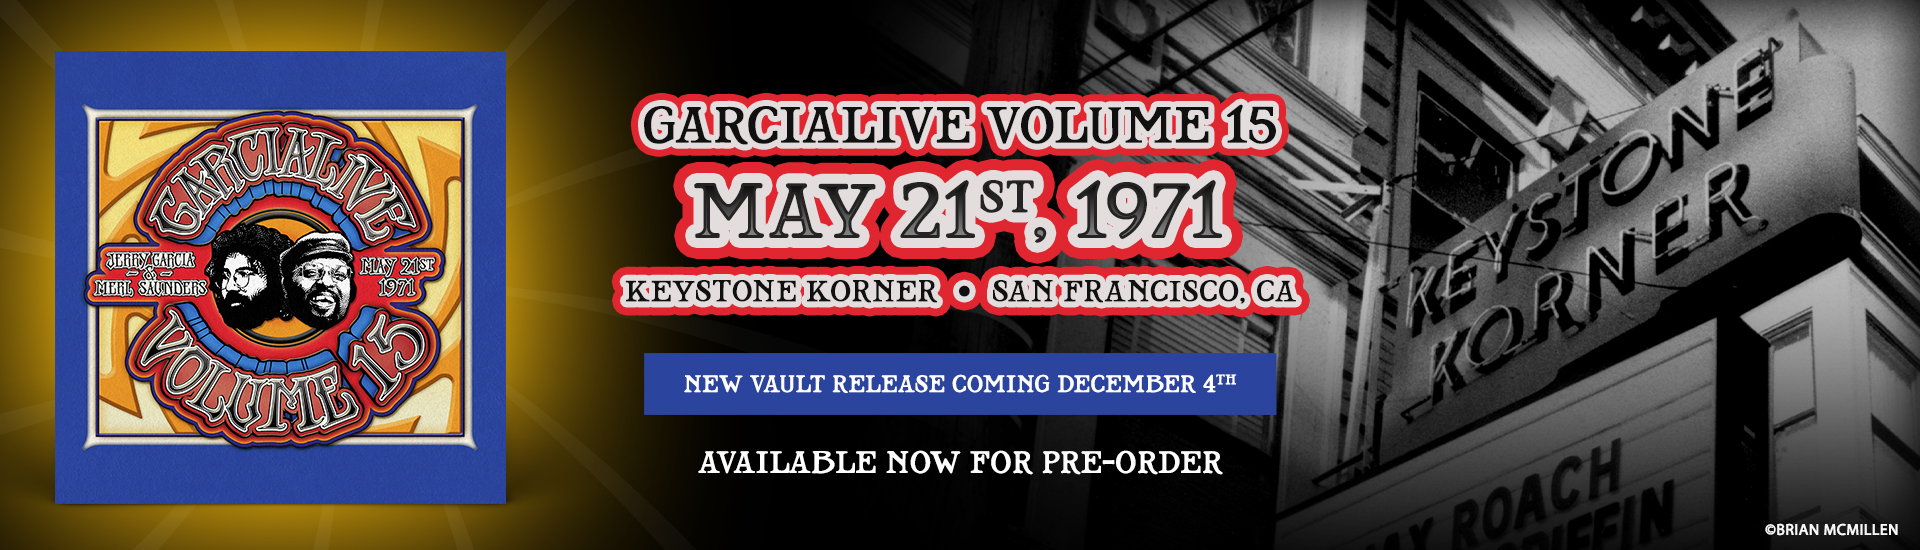 GarciaLive Volume 15: Now Available For Pre-Order